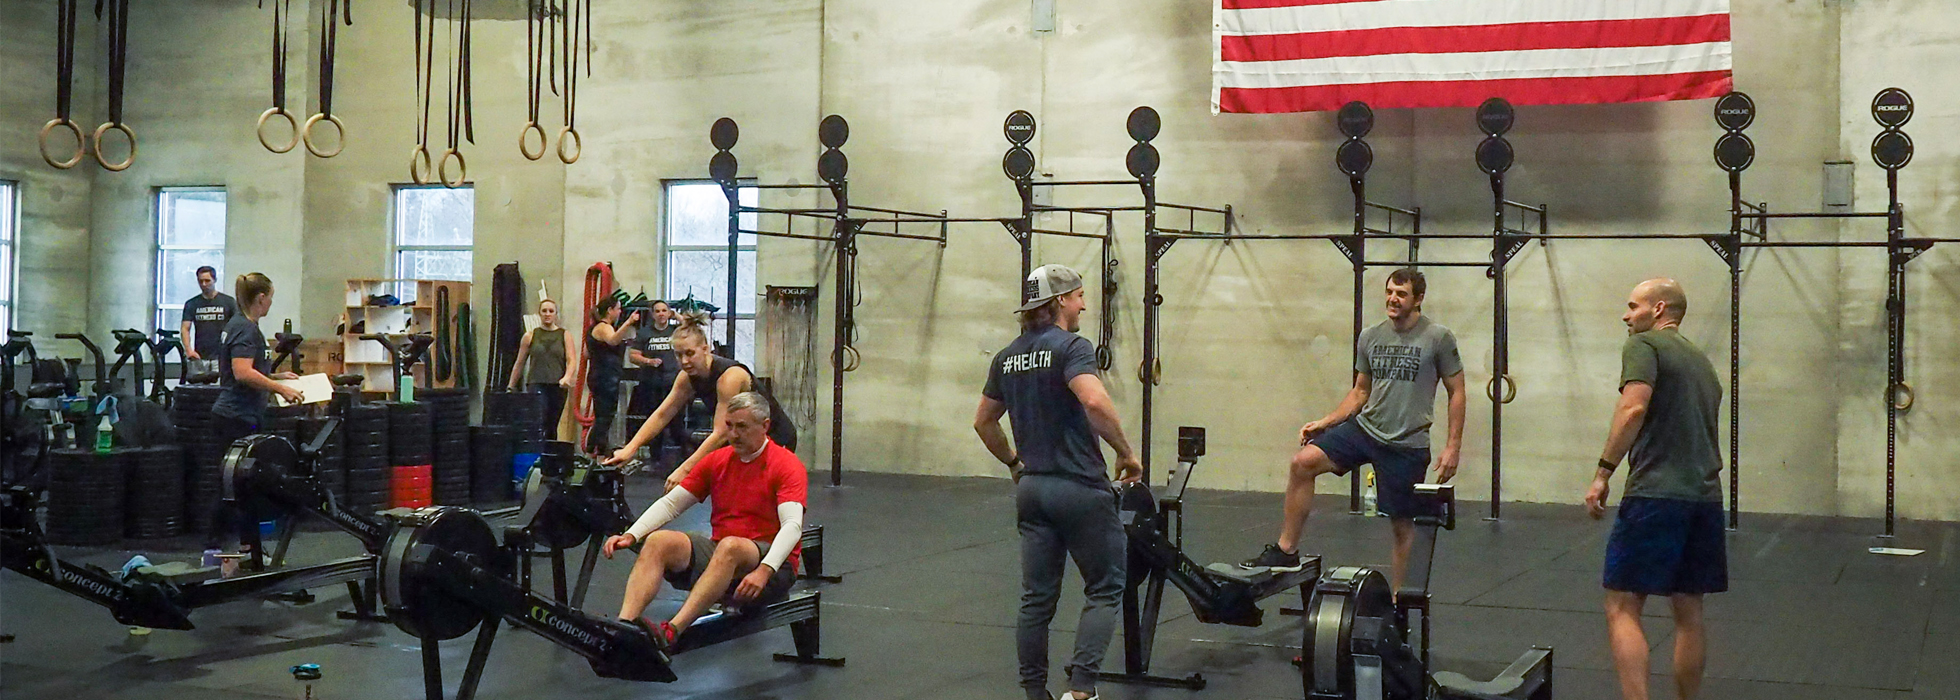 CrossFit Gym near Indianapolis IN, CrossFit Gym near Northwest Indianapolis IN, CrossFit Gym near Zionsville IN, CrossFit Gym near Carmel IN, CrossFit Gym near Whitestown IN